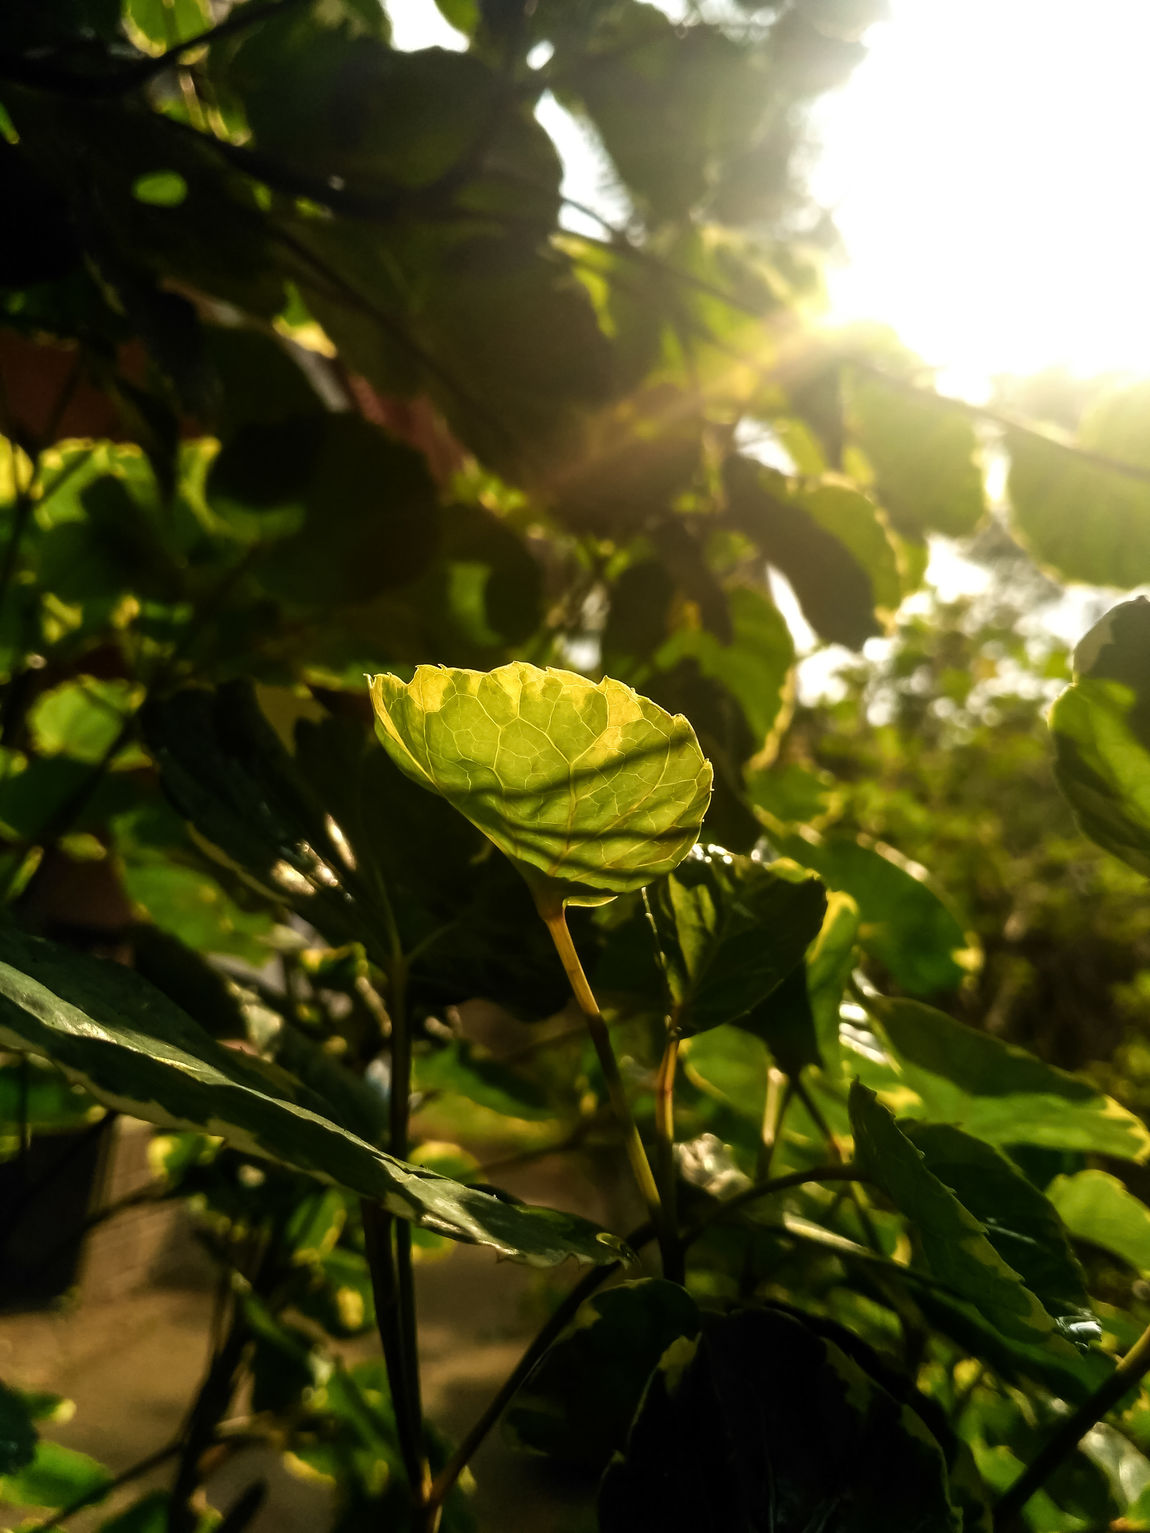 Plant Nature No People Green Color Leaf Growth Outdoors Day Sunlight Green Color Freshness Beauty In Nature Sunrays